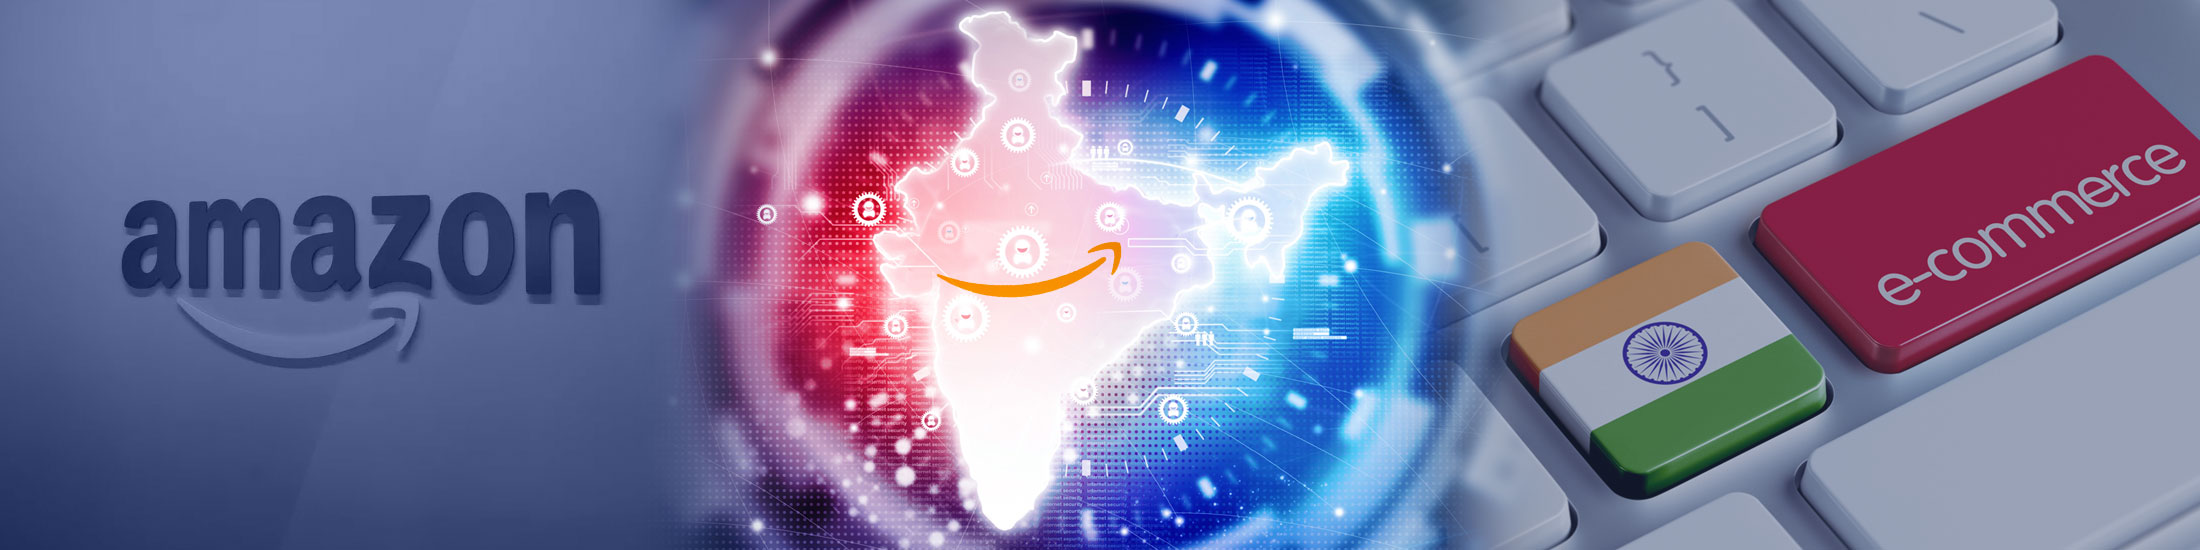 Amazon Enters Partnership with Indian Retailer to Sell Online